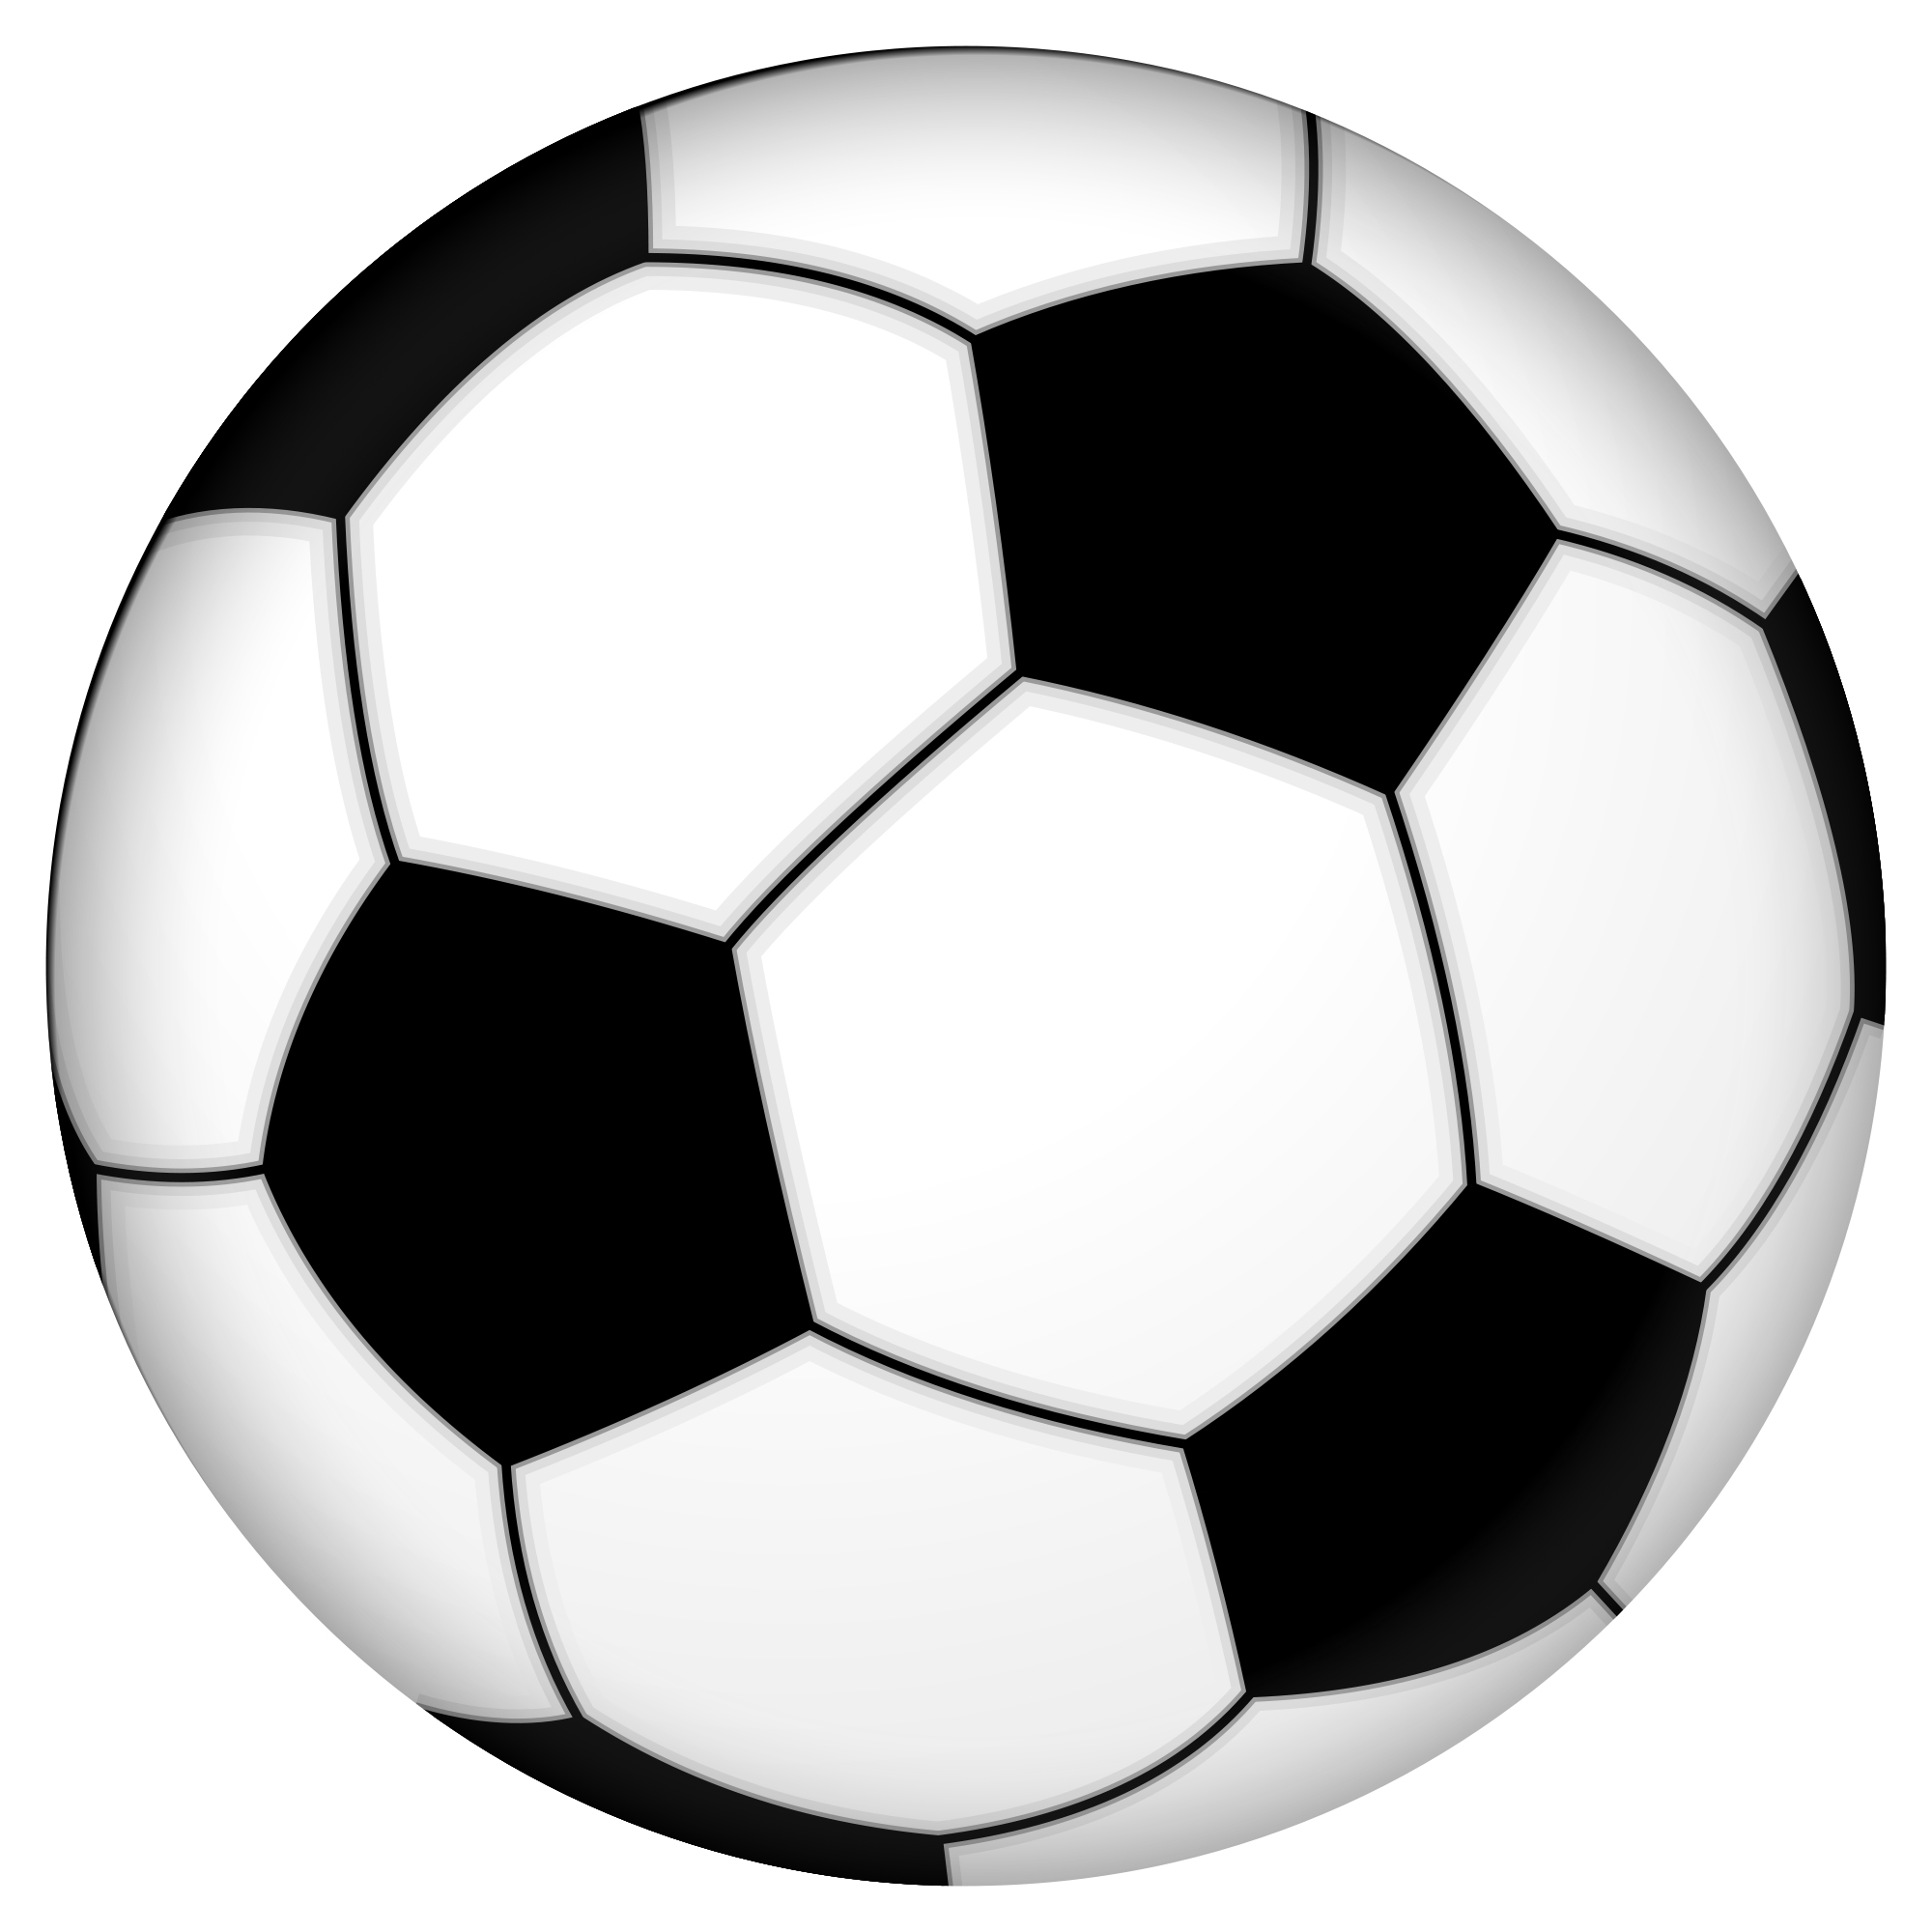 2000x2000 Soccer Ball Border Clip Art Free Clipart Images 2